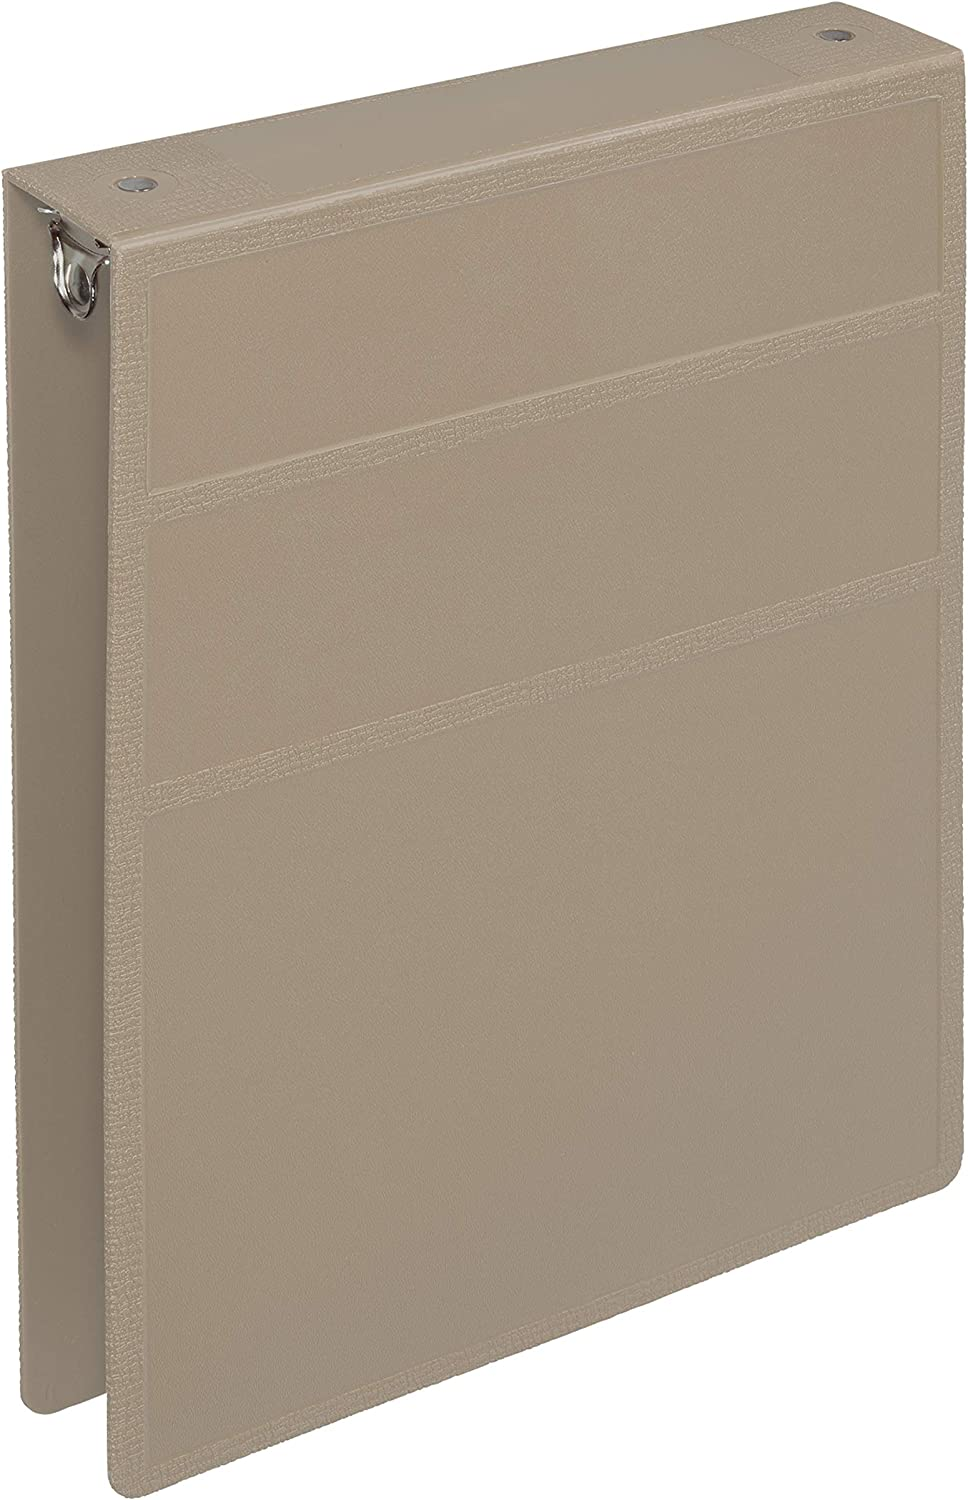 Top Opening Carstens 2-Inch Heavy Duty 3-Ring Binder Navy Blue